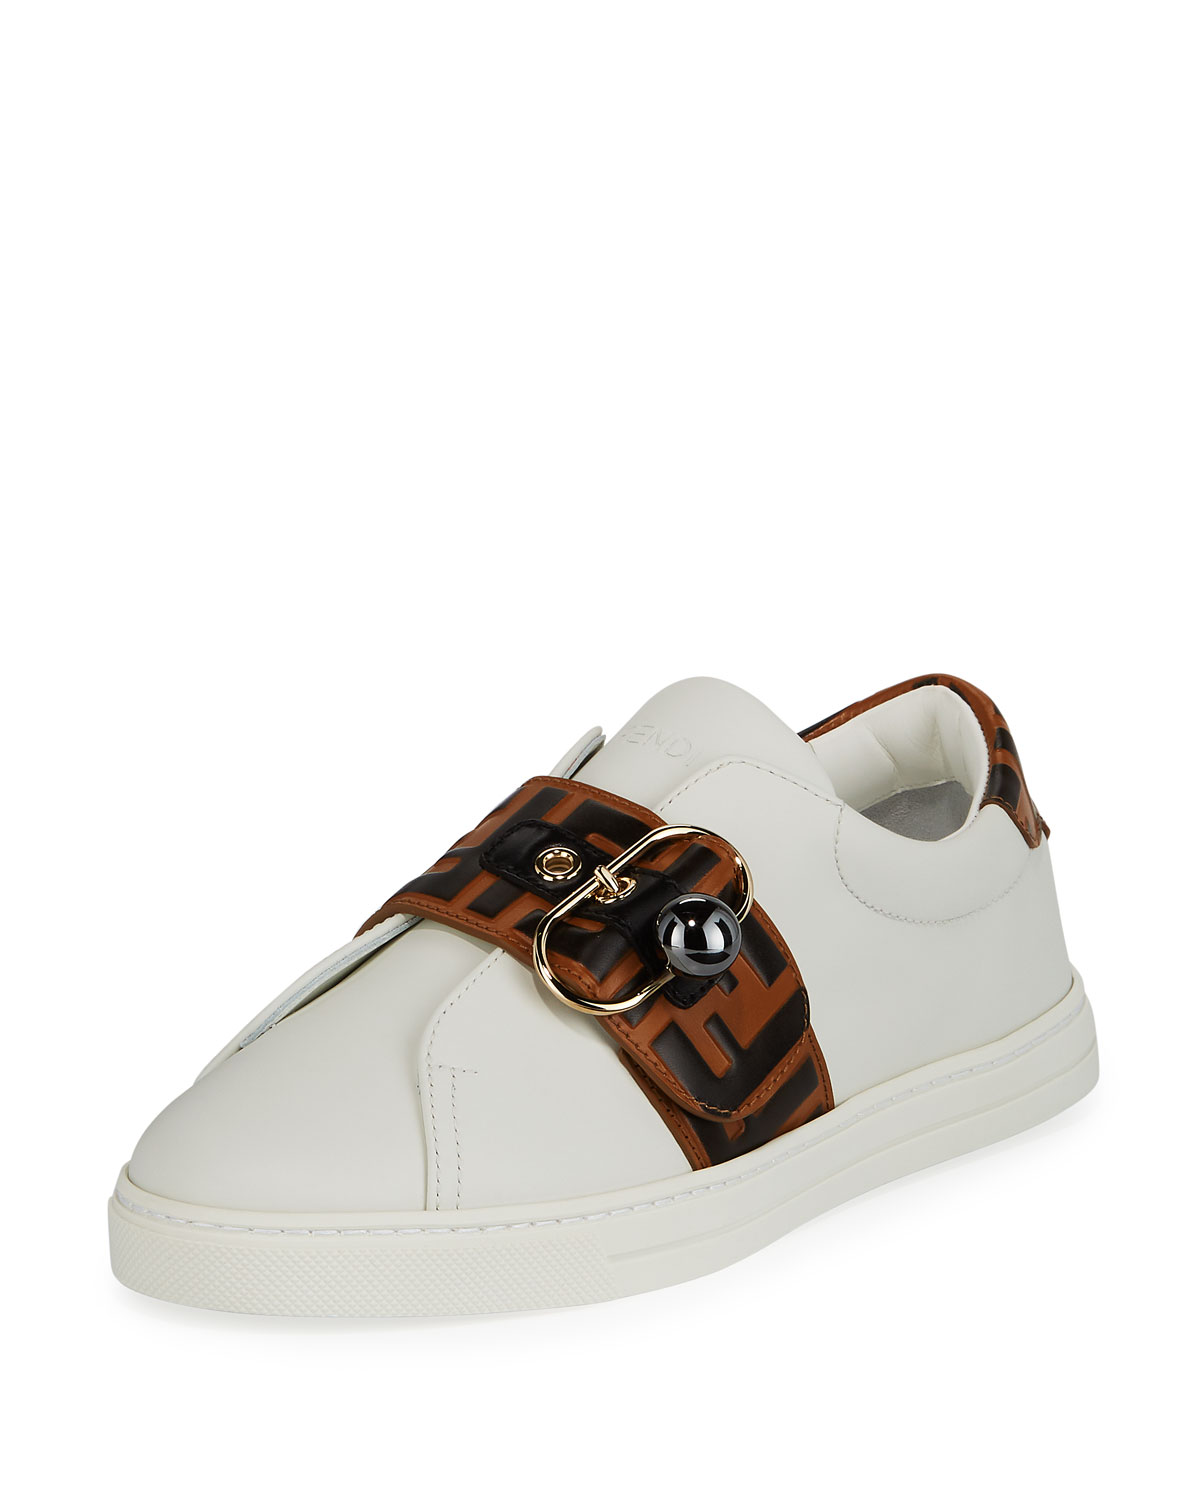 09a9f6aaf9d3 Fendi Pearland Leather Sneakers with FF Strap